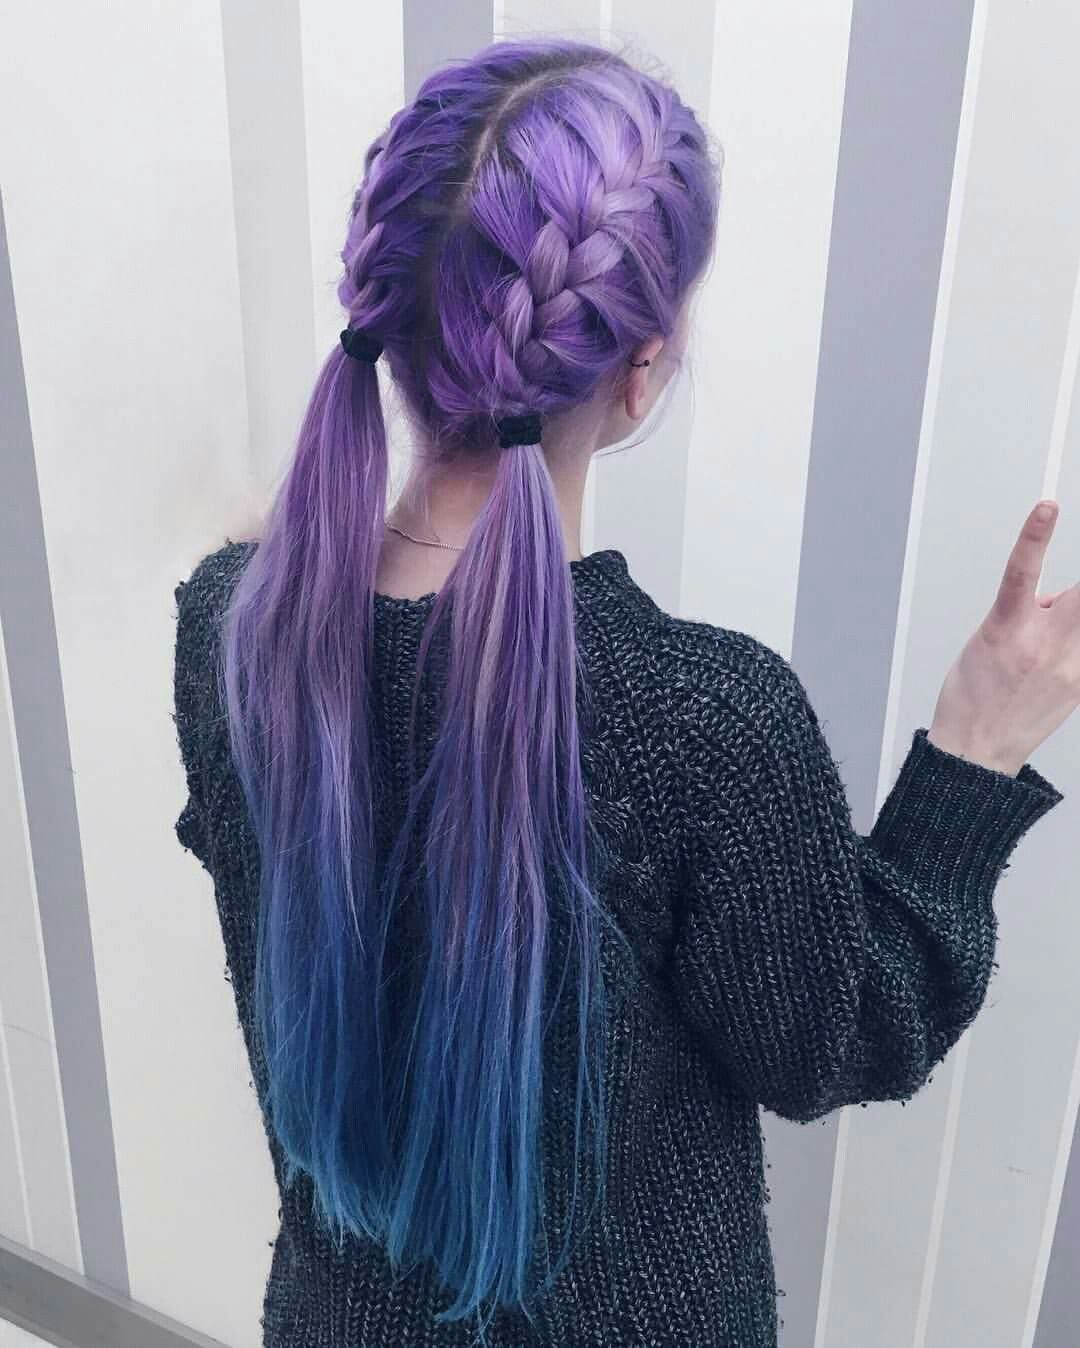 Pin by bethany bult on art inspiration pinterest hair coloring